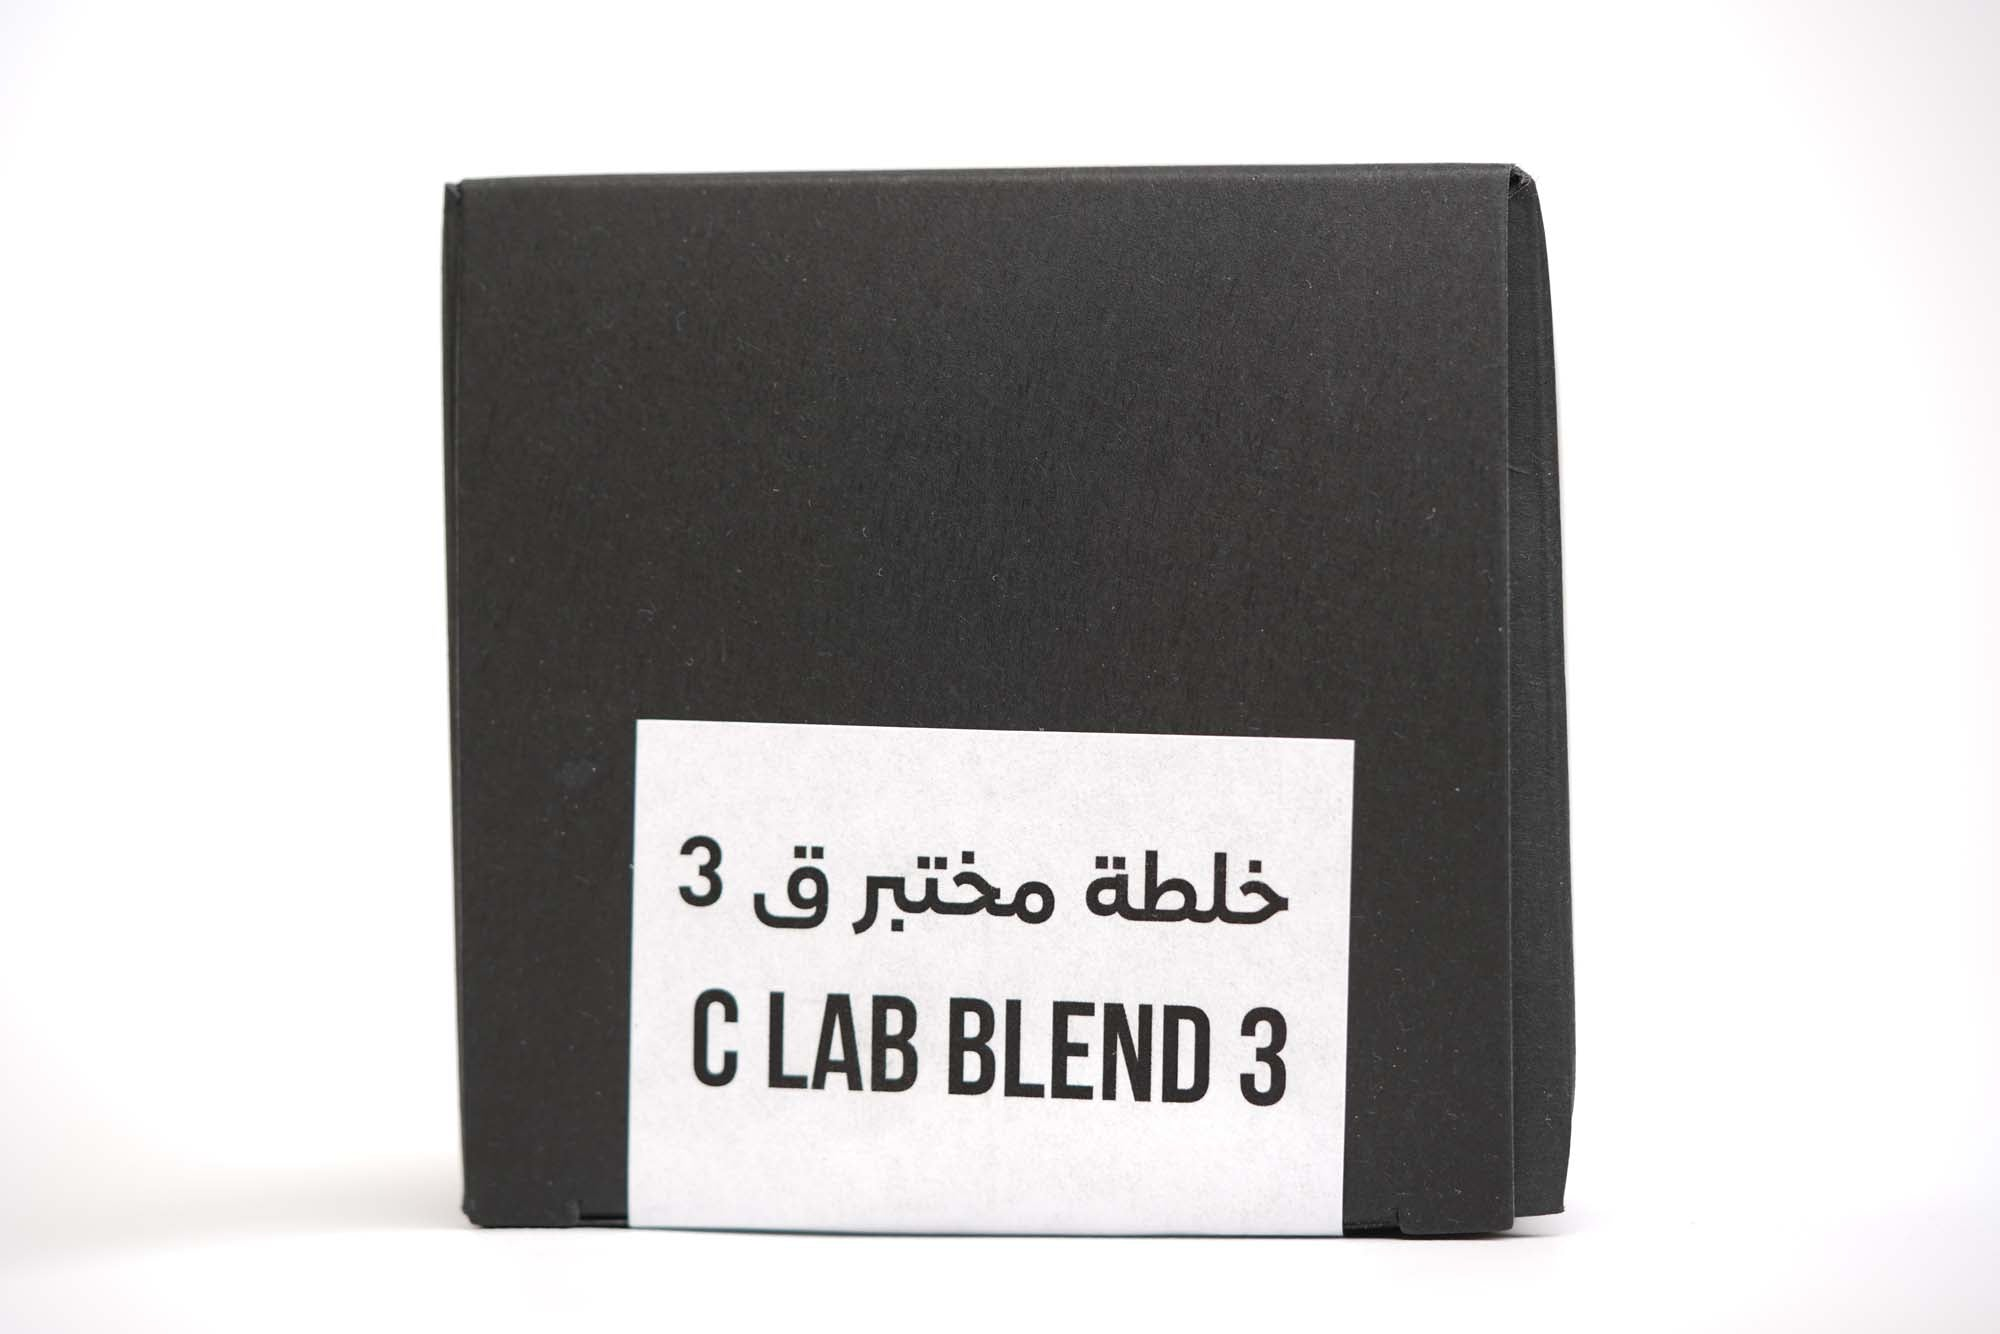 Box of Instant C Lab Blend 3